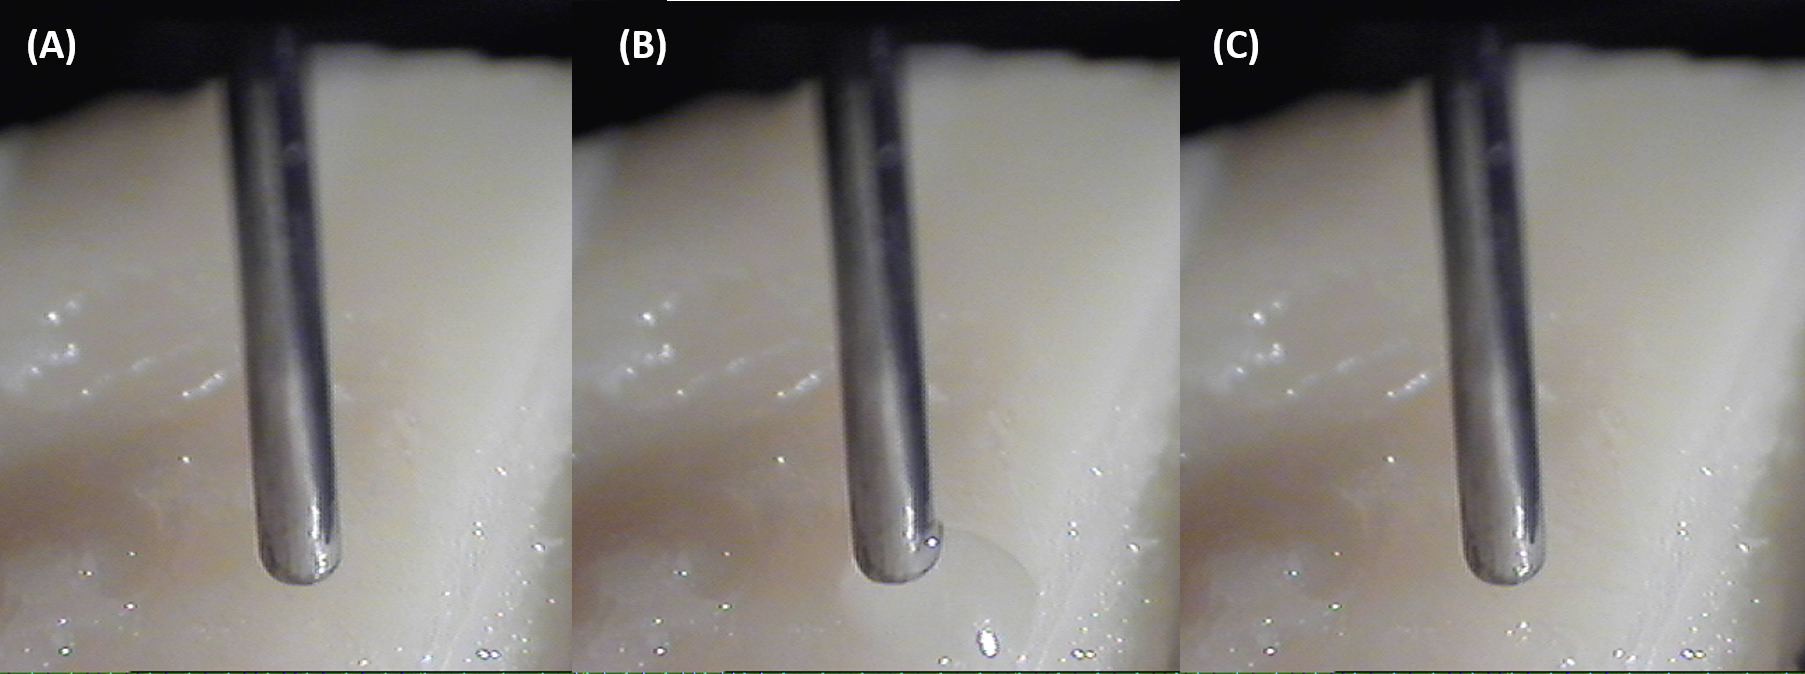 Figure 2.  Examples of quality control photos obtained for every sampling event by the SeqQuant®  droplet Probe: (A) Before droplet disbursement, (B) during surface sampling, and (C) upon retraction of the droplet.